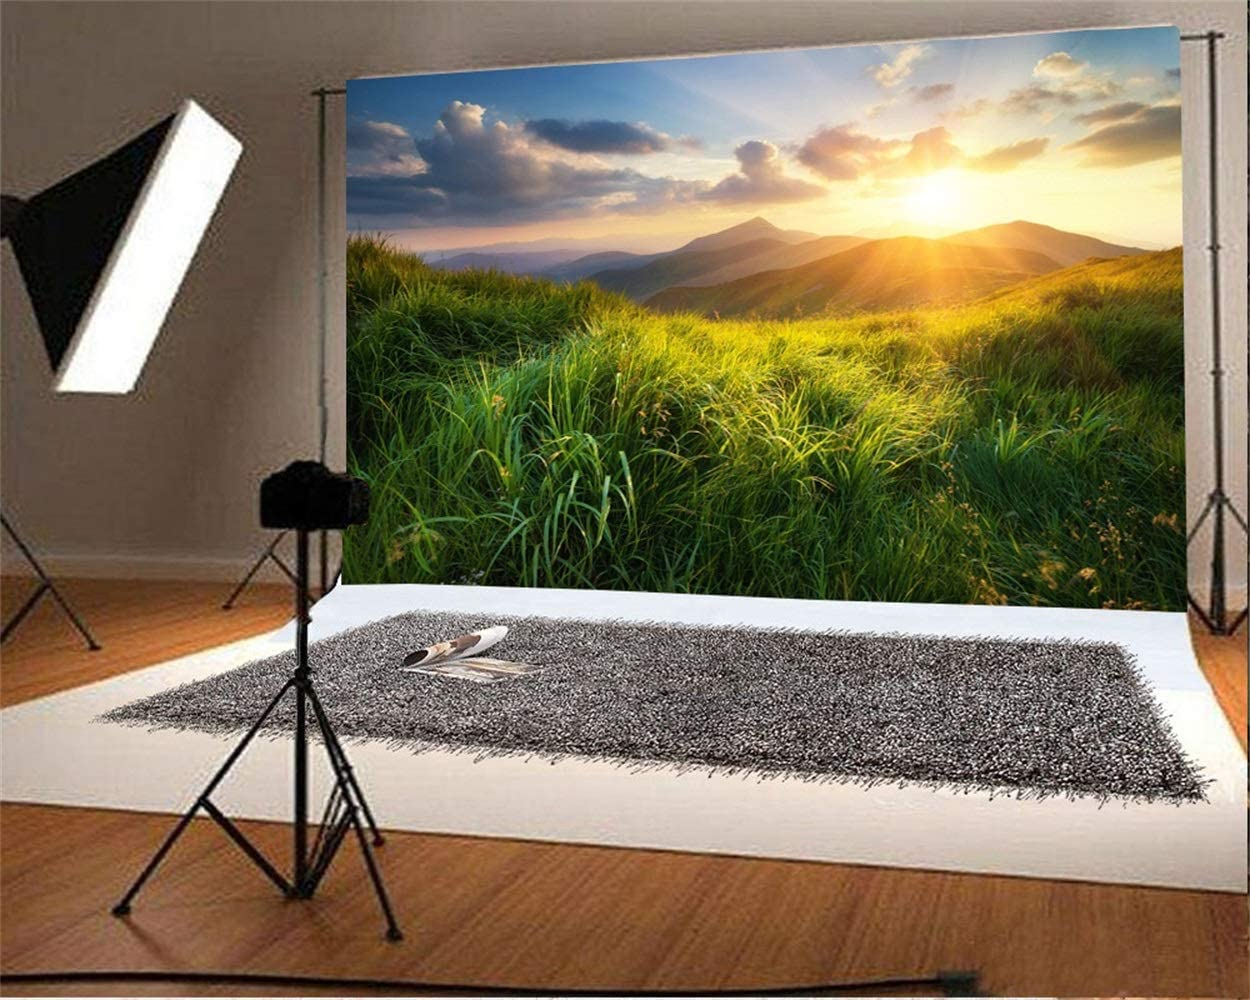 7x5ft Dusk Prairie Scenic Backdrop Polyester Tranquil Green Grassland Remote Mountains Sunset Glow Rose Cloud Photography Background Baby 1st Birthday Party Banner Child Baby Portrait Shoot